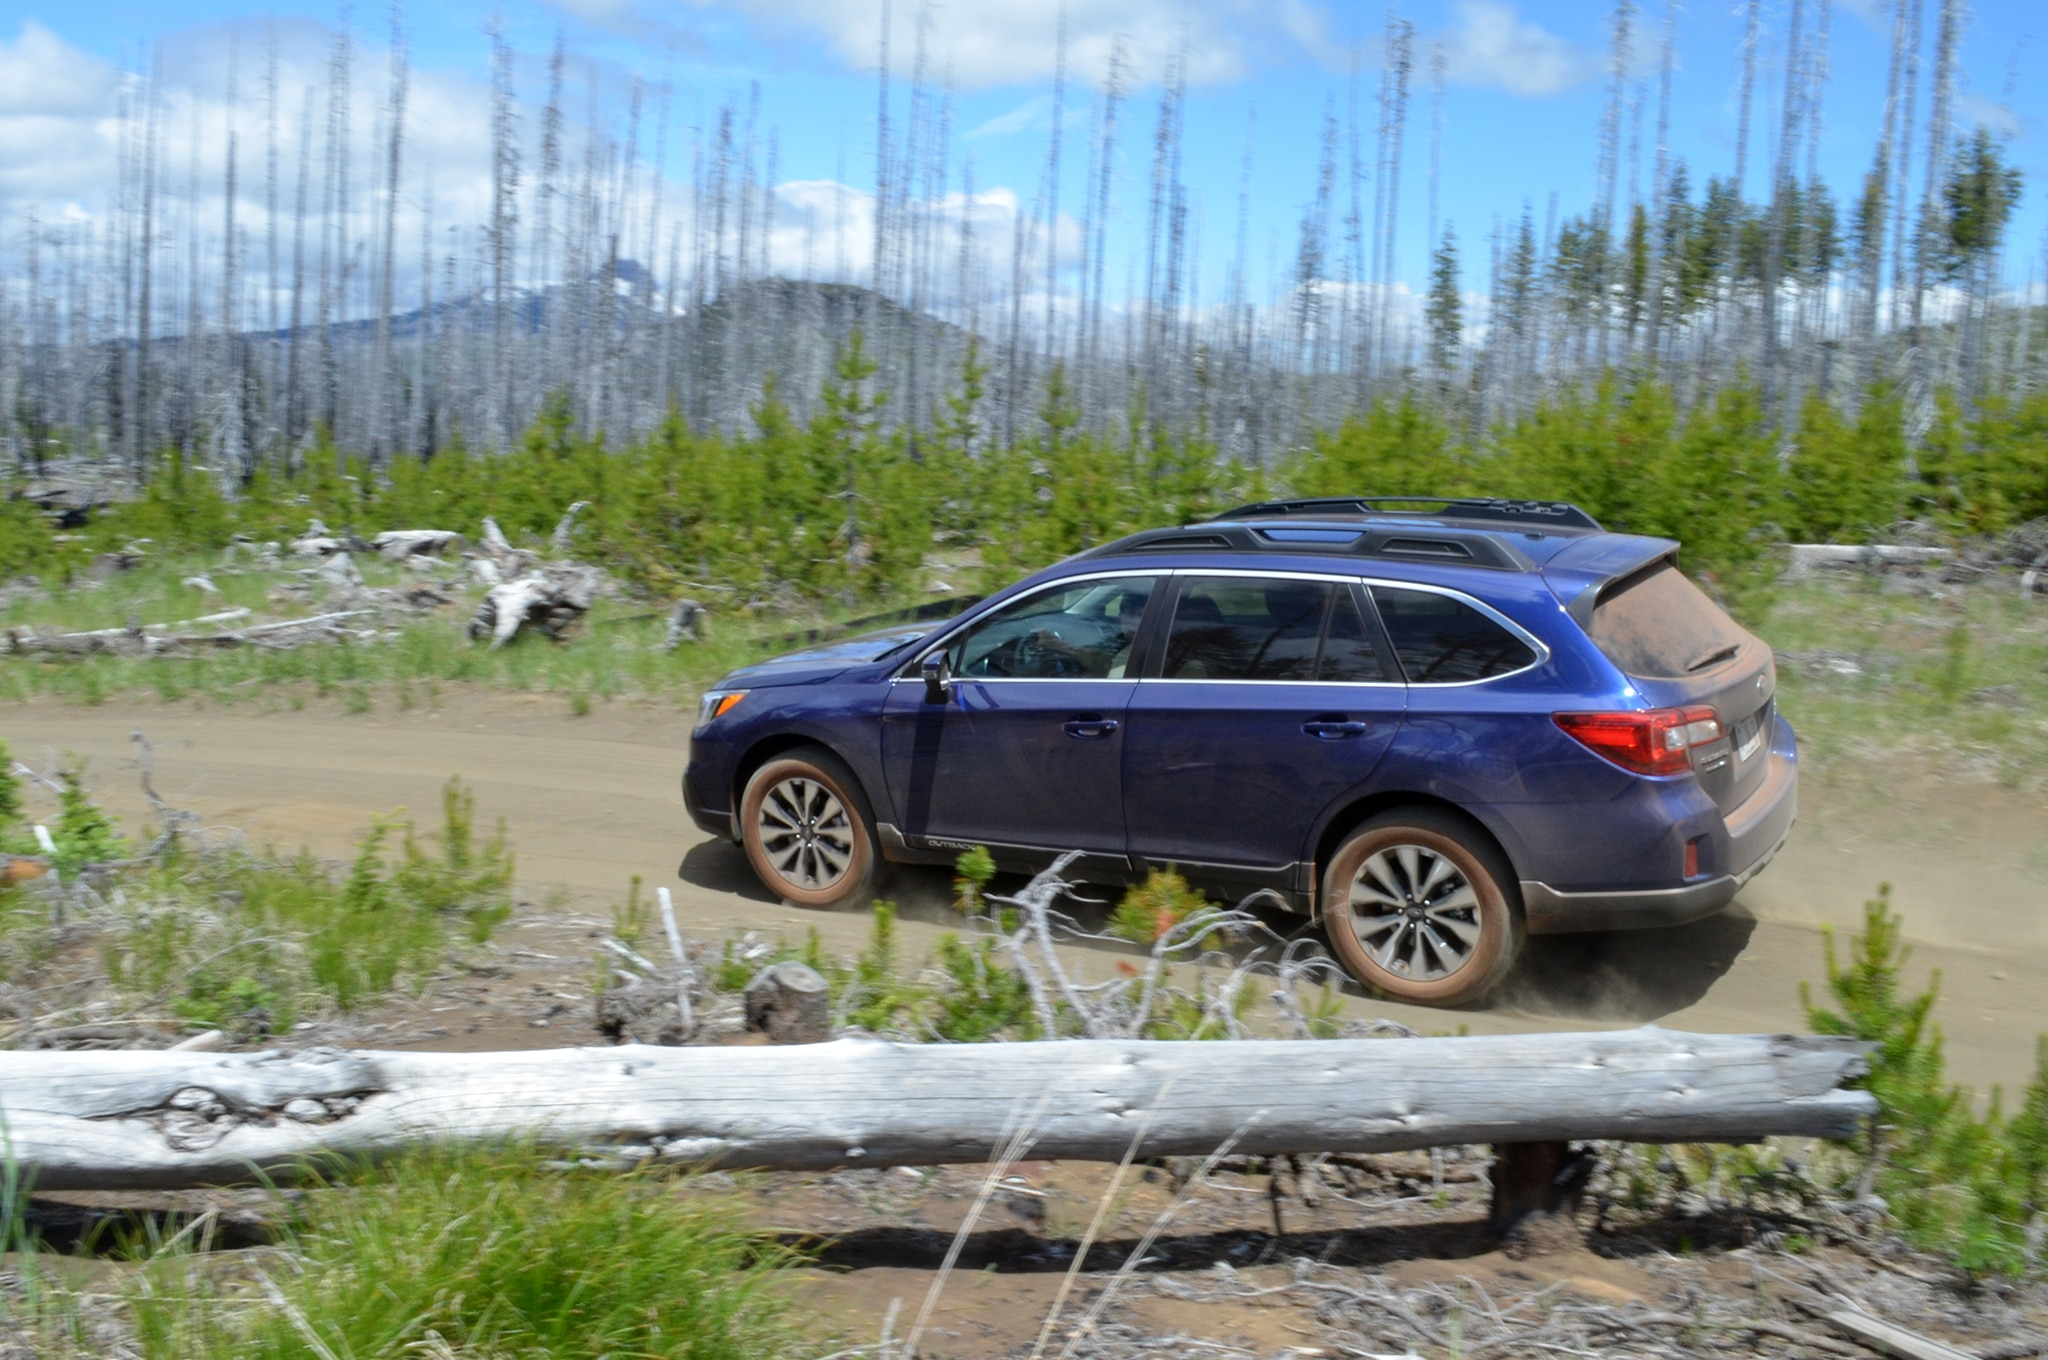 2015 Subaru Outback Rear Three Quarter Blue